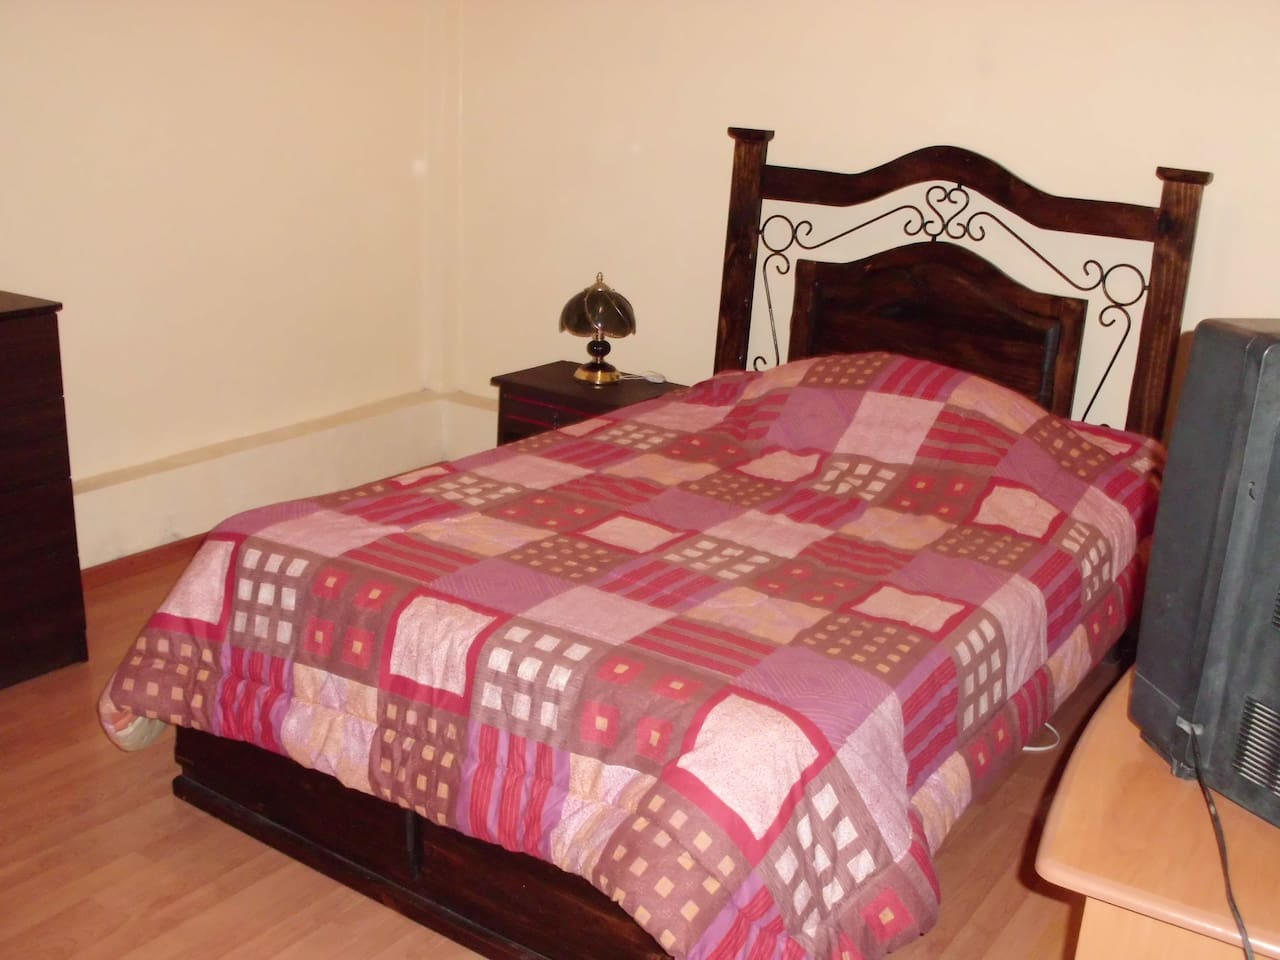 FOR RENT SIMPLE ROOM WITH BATHROOM